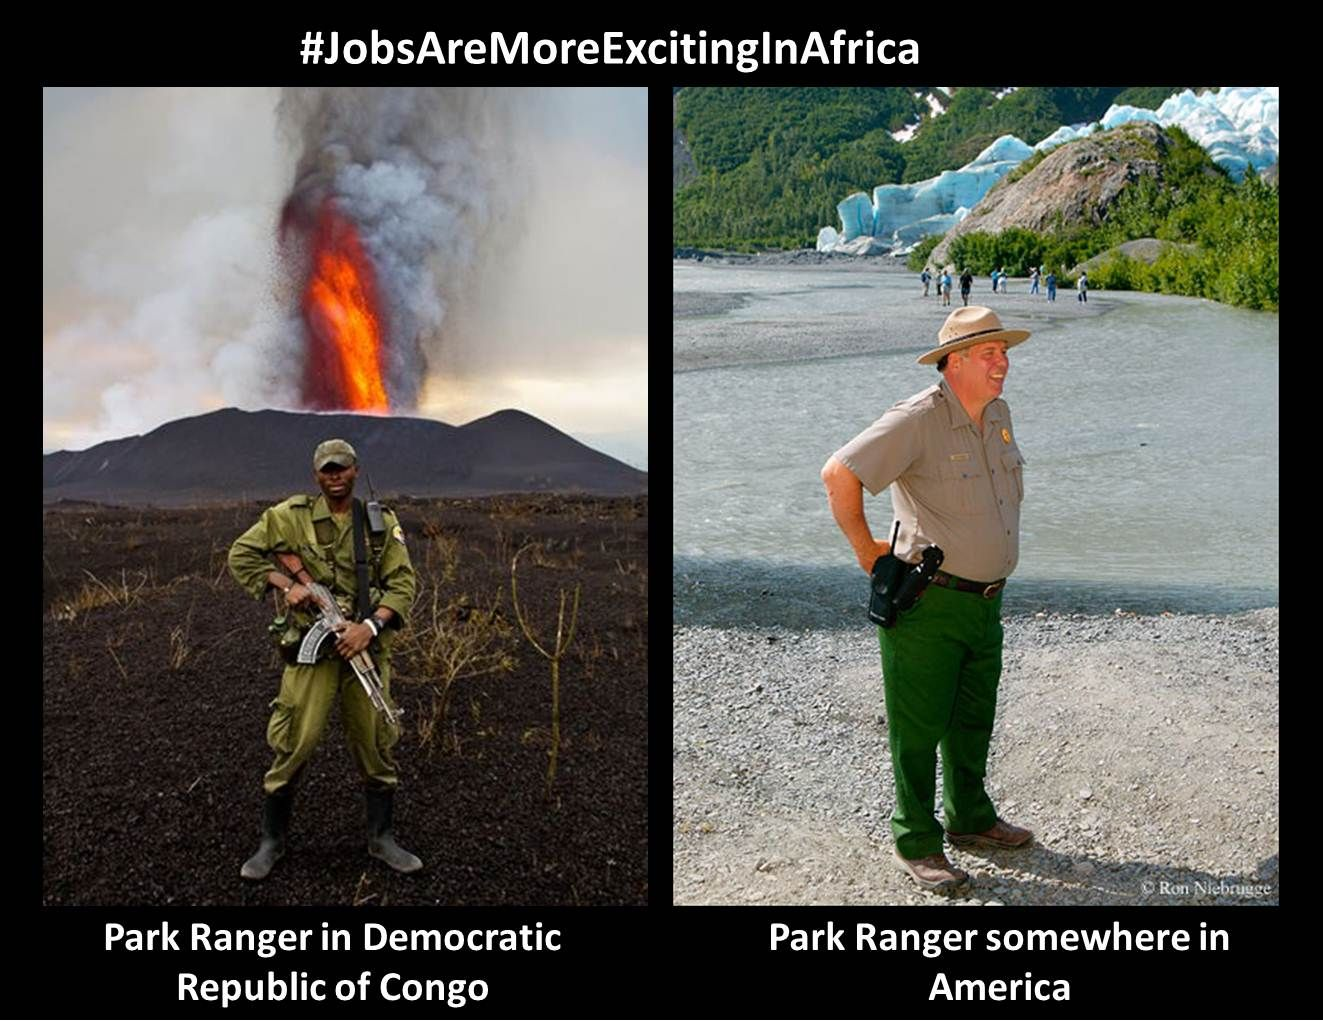 Even the park rangers in Congo are badass. Funny